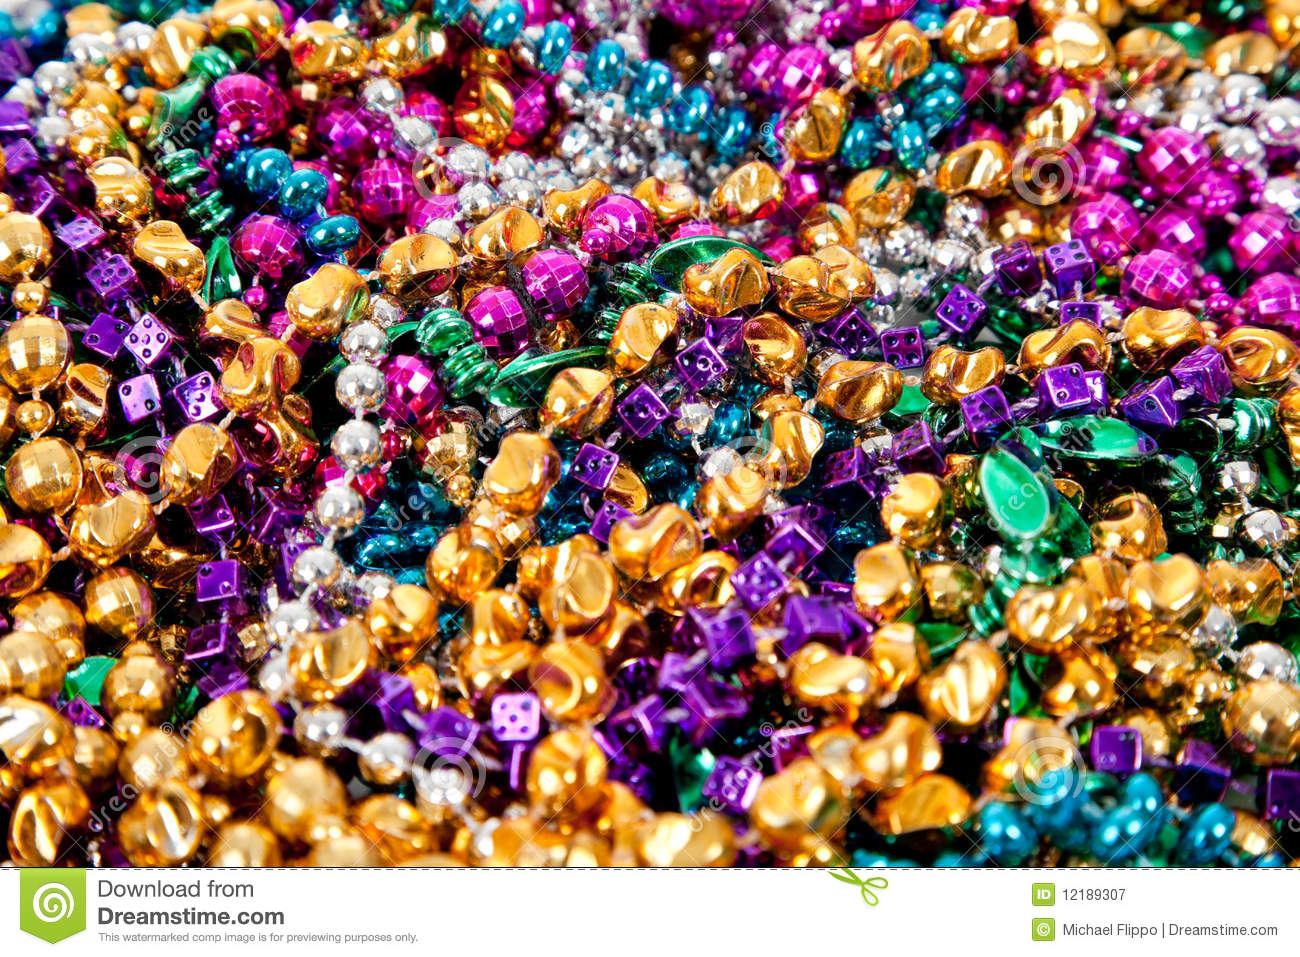 background of mardi gras beads stock image - image: 12189307, Powerpoint templates